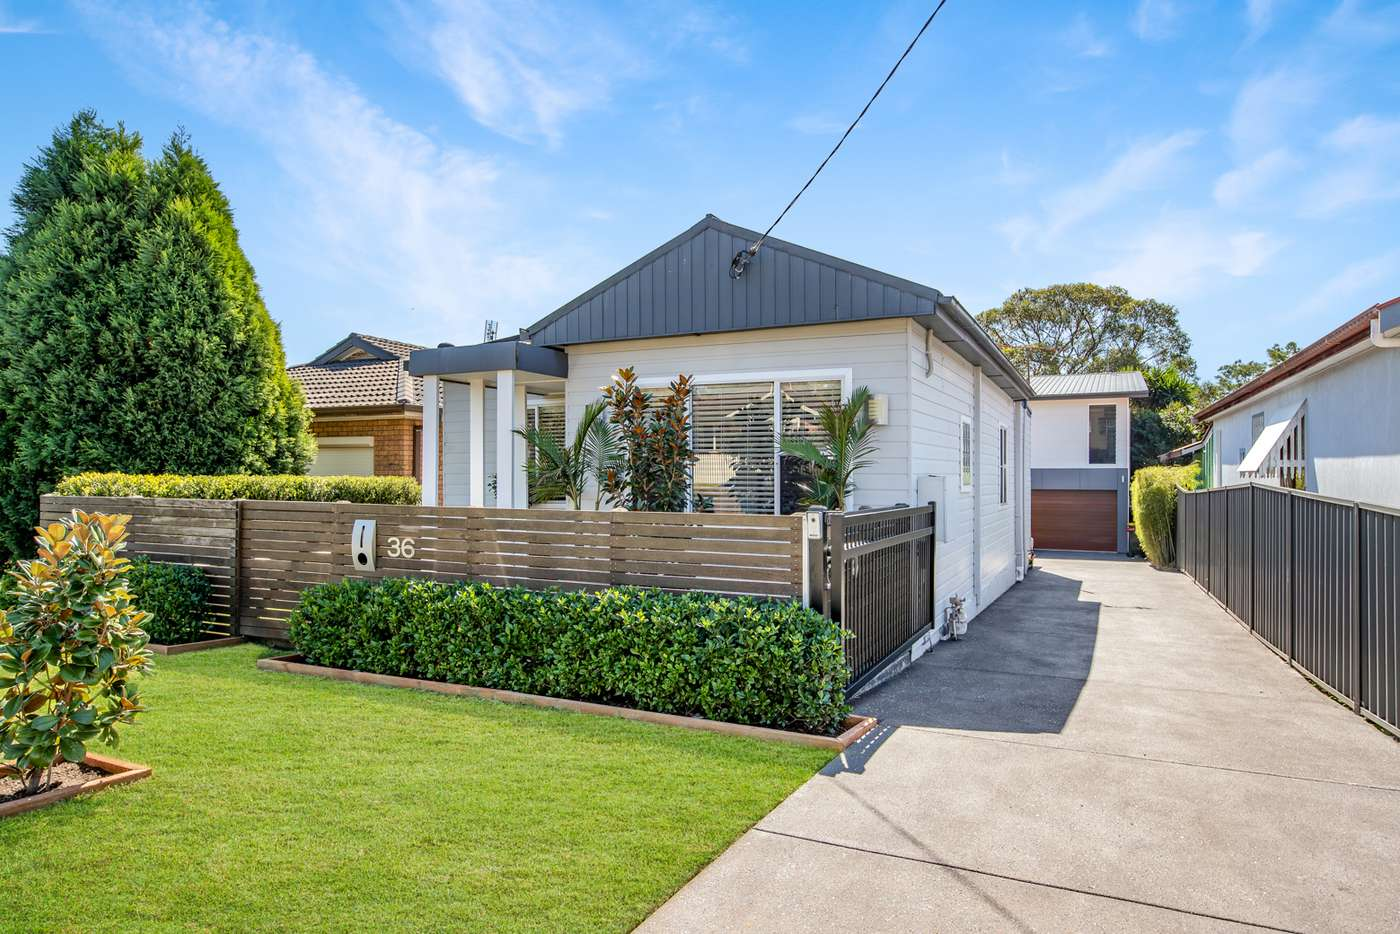 Main view of Homely house listing, 36 Moira Street, Adamstown NSW 2289